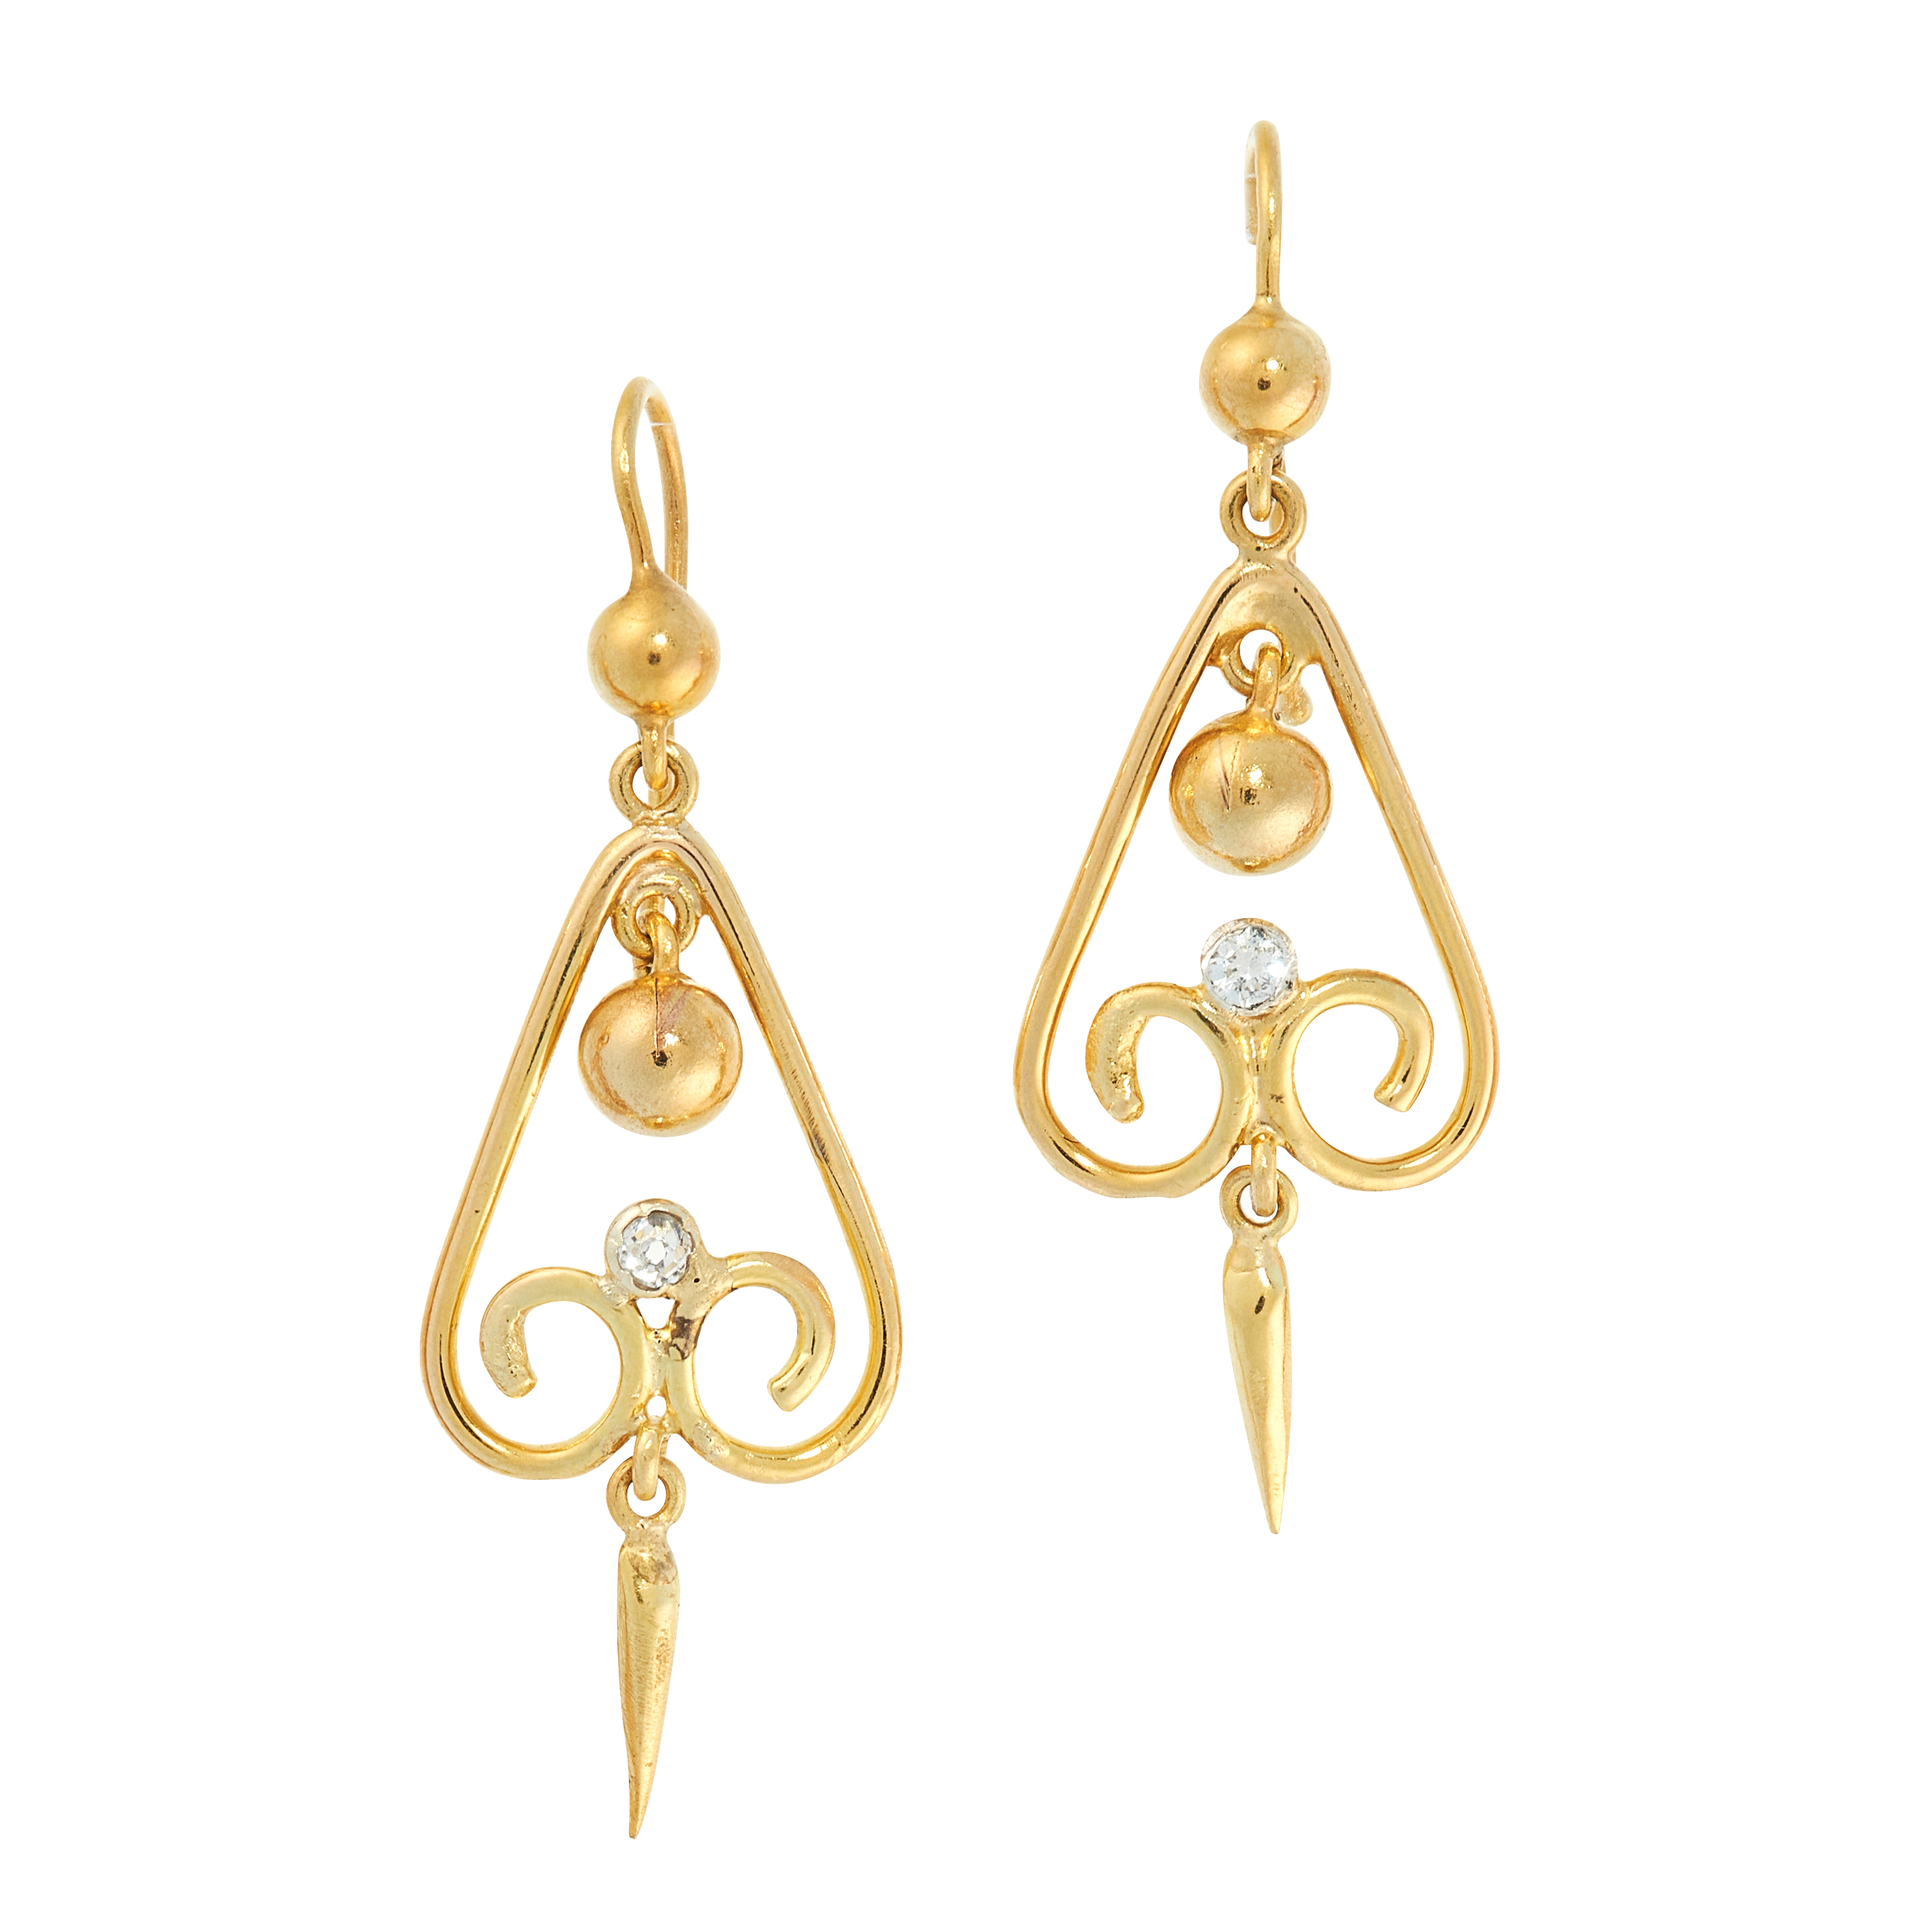 A PAIR OF ANTIQUE DIAMOND DROP EARRINGS in 15ct yellow gold, the articulated body of each set with